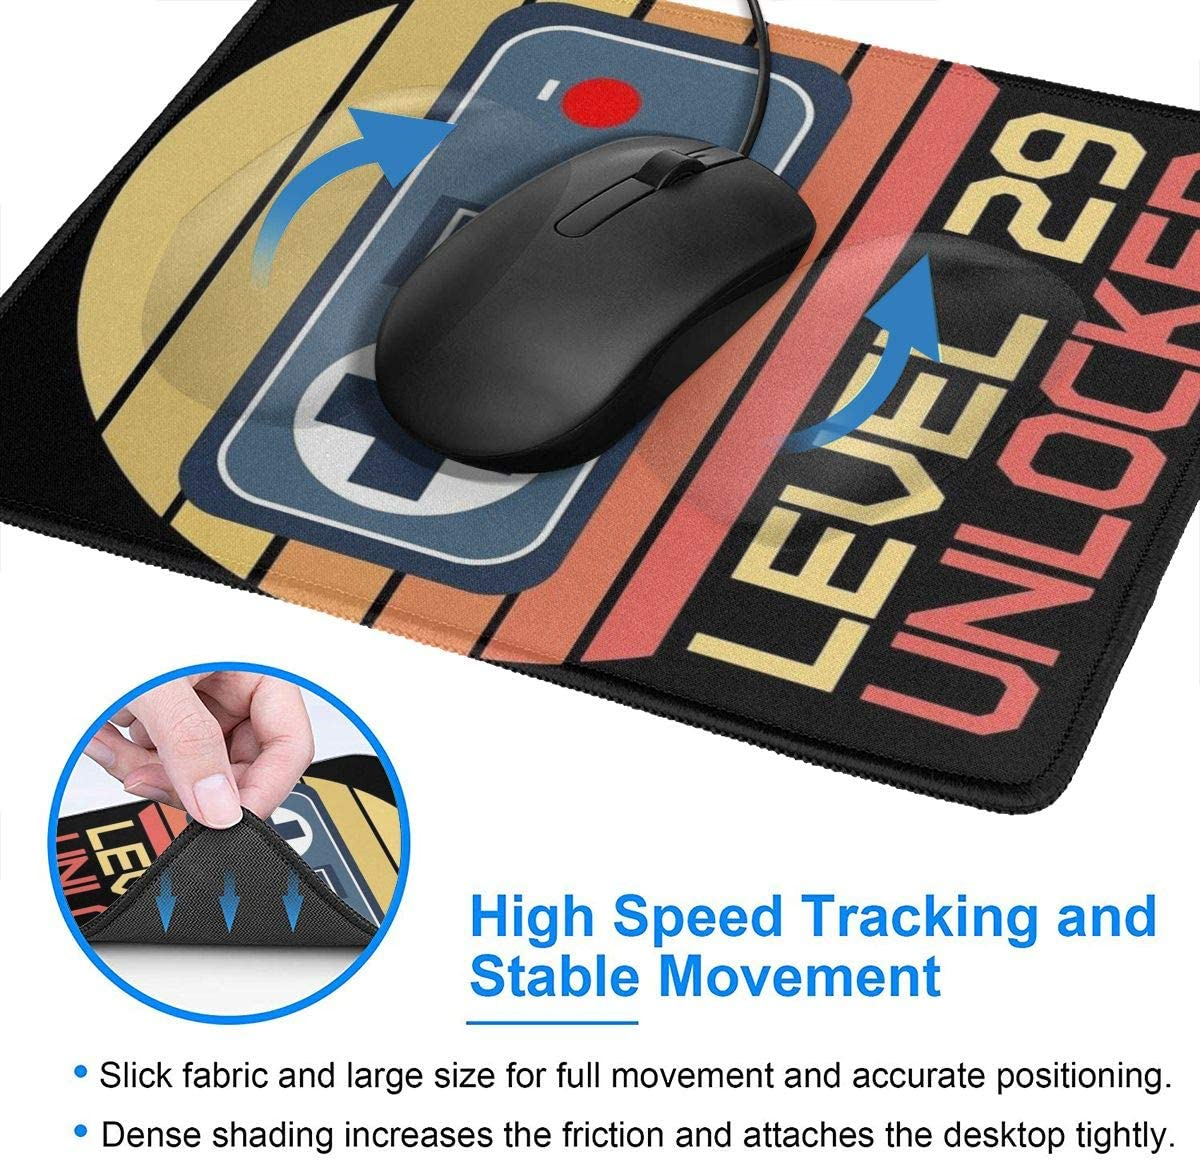 Level 27 Unlocked 27Th Birthday Gift Millennial Video Gamer T-Shirt Hemming The Mouse Pad 10 X 12 Inch Esports Office Study Computer